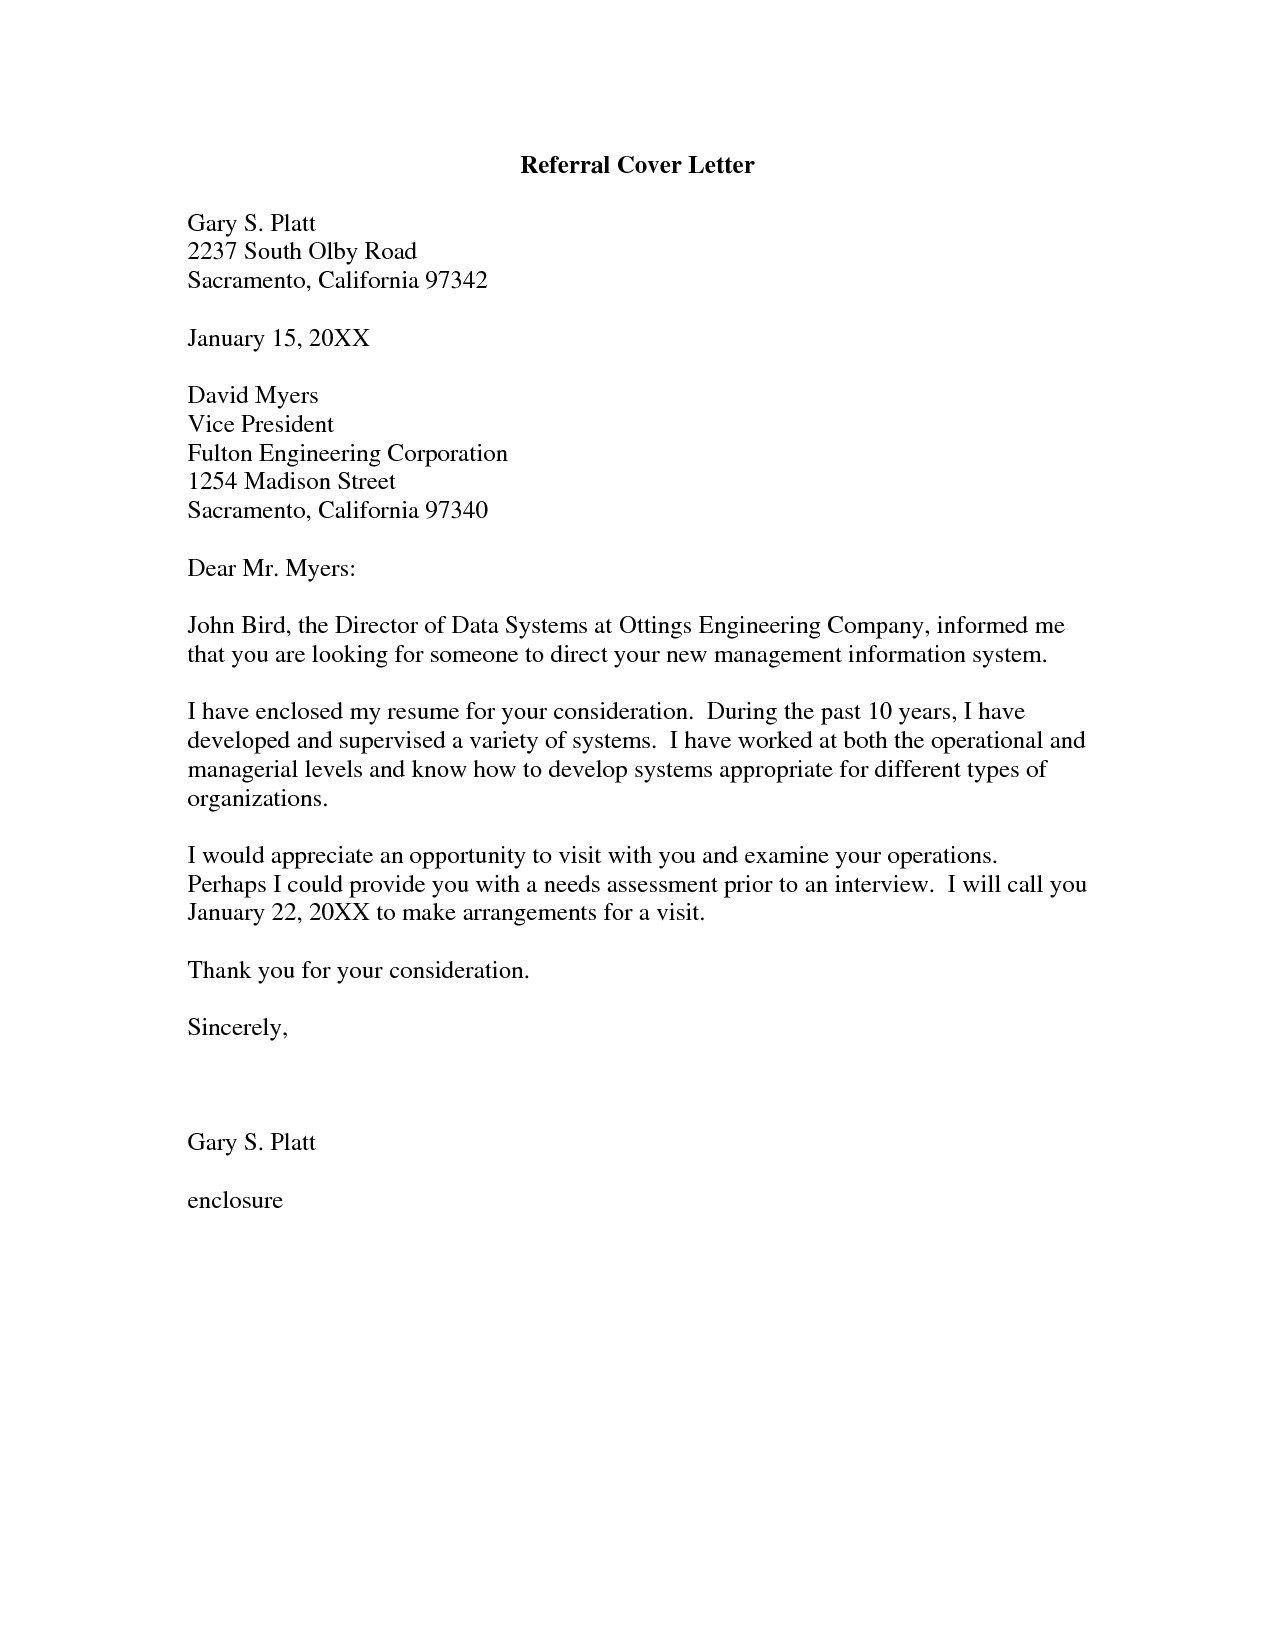 seek cover letter template